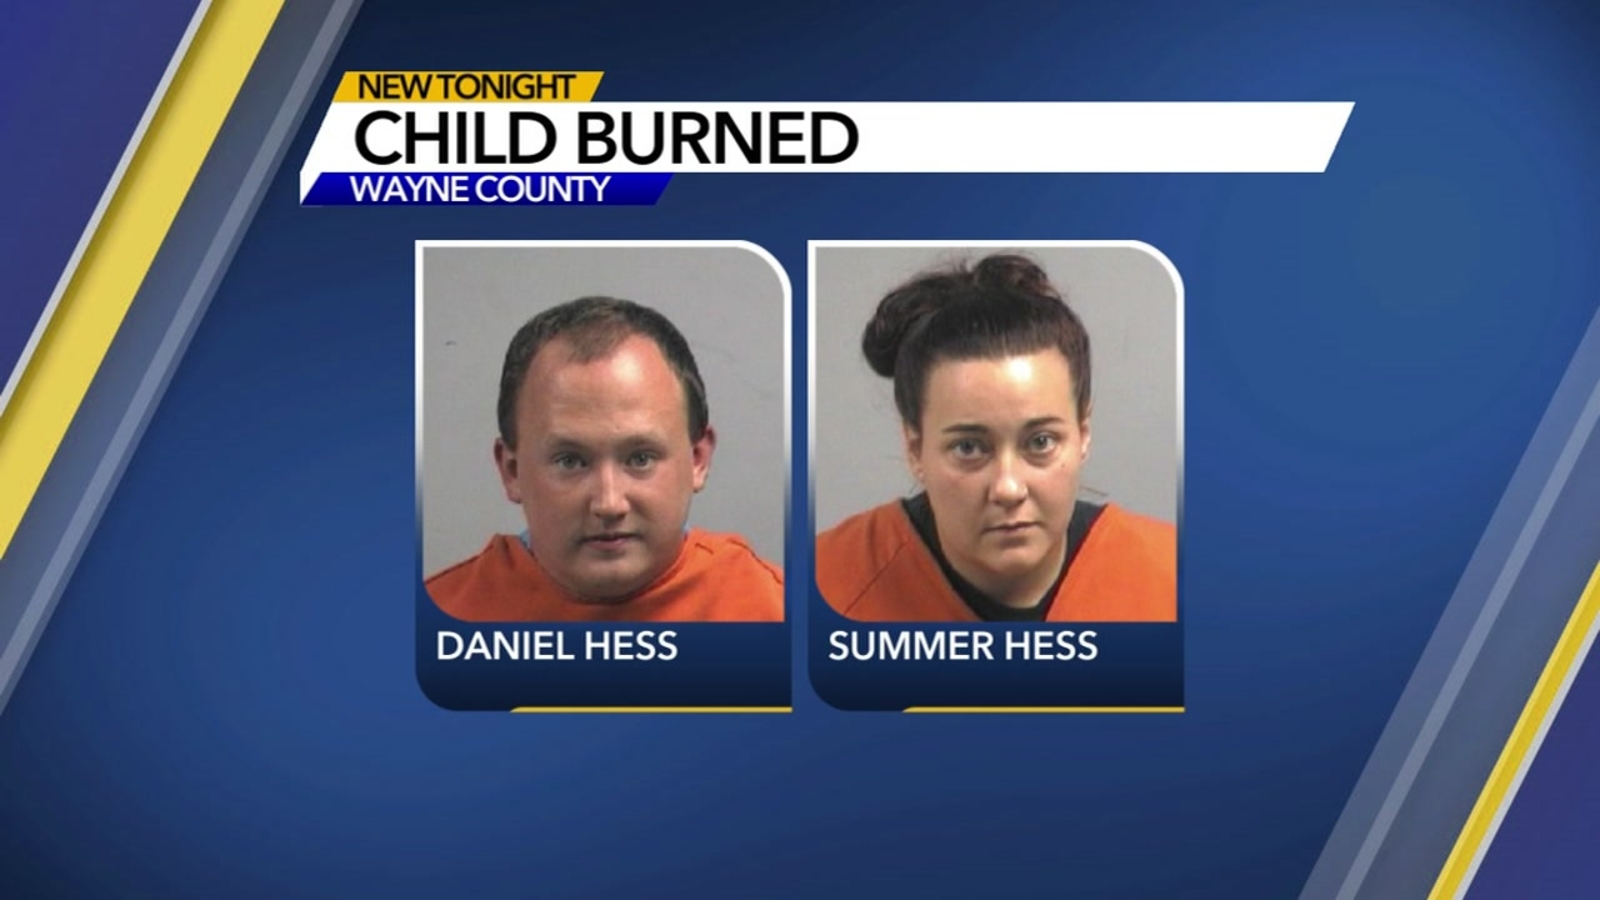 Two charged after child found with burns